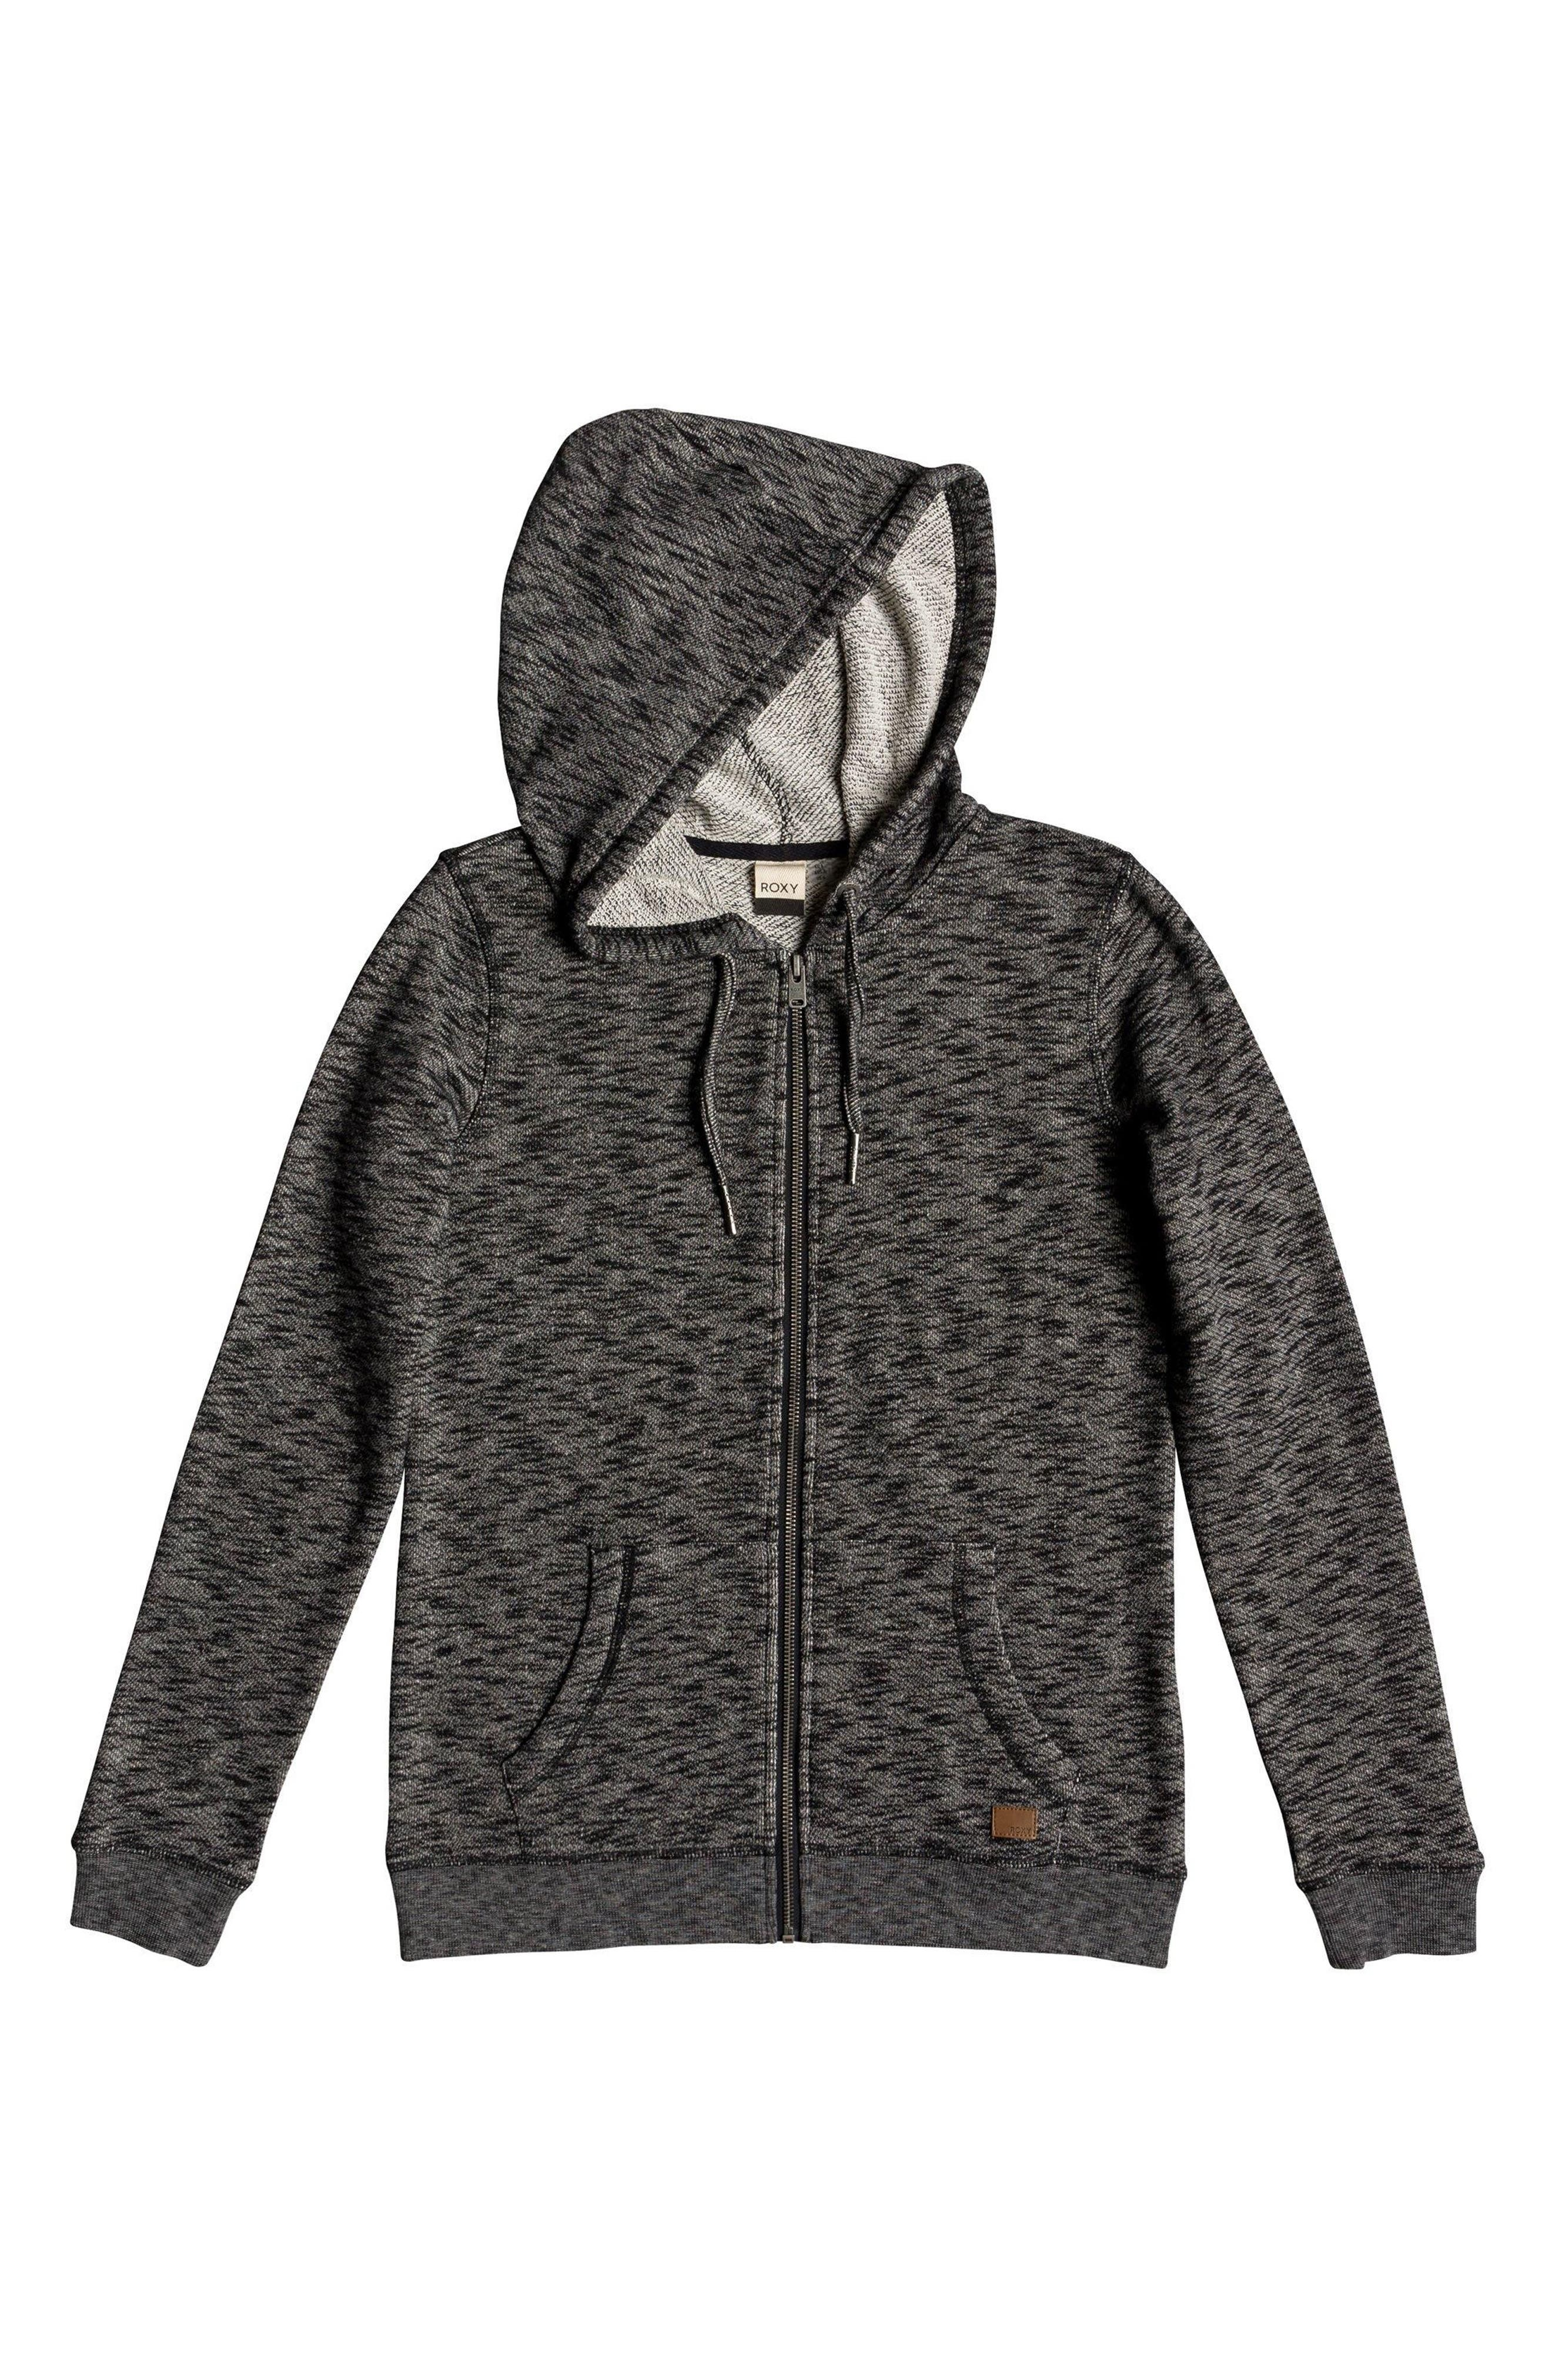 ROXY, Trippin Hoodie, Alternate thumbnail 3, color, ANTHRACITE HEATHER